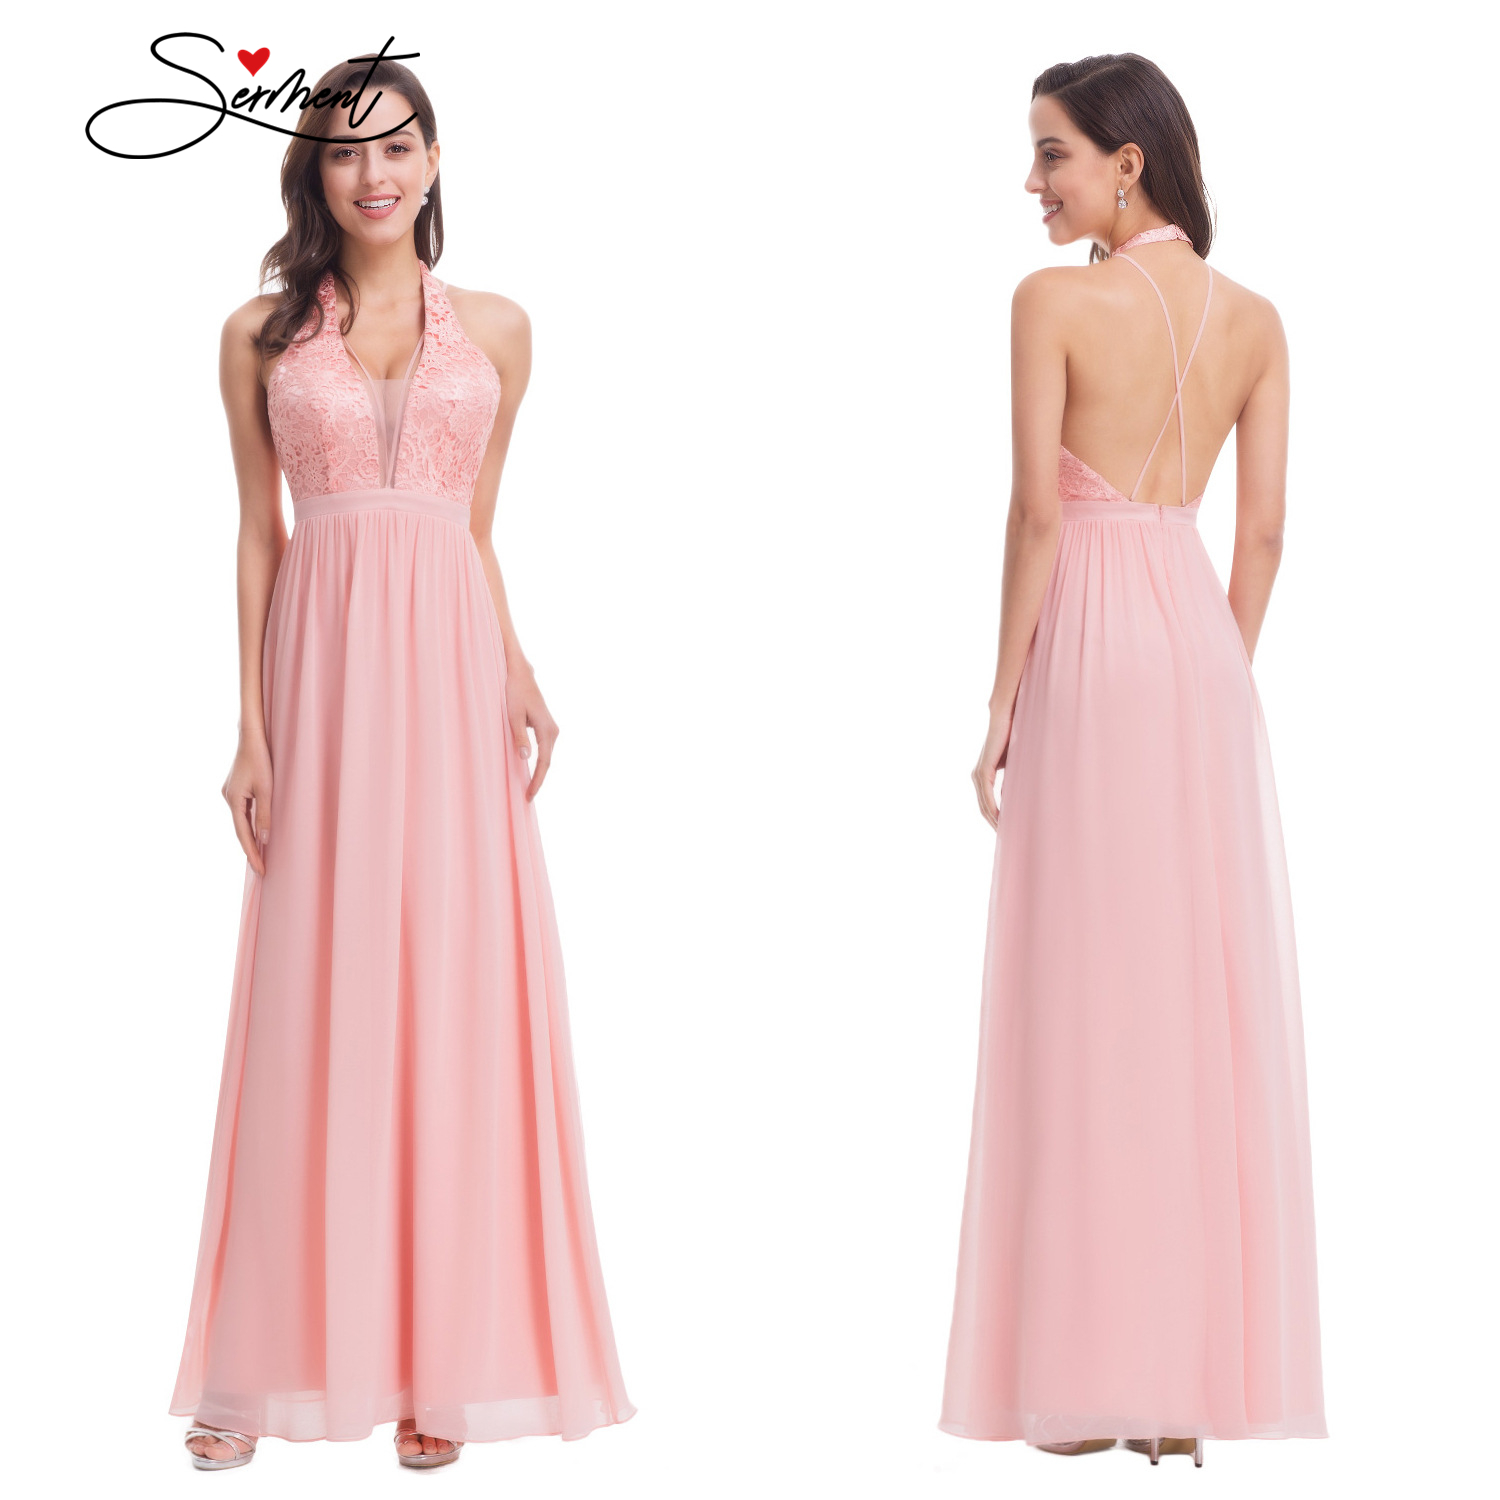 OLLYMURS New Elegant Woman Evening Gown Summer Chiffon Pure Color Lace Deep VSexy Pink Evening Dress Suitable For Formal Parties